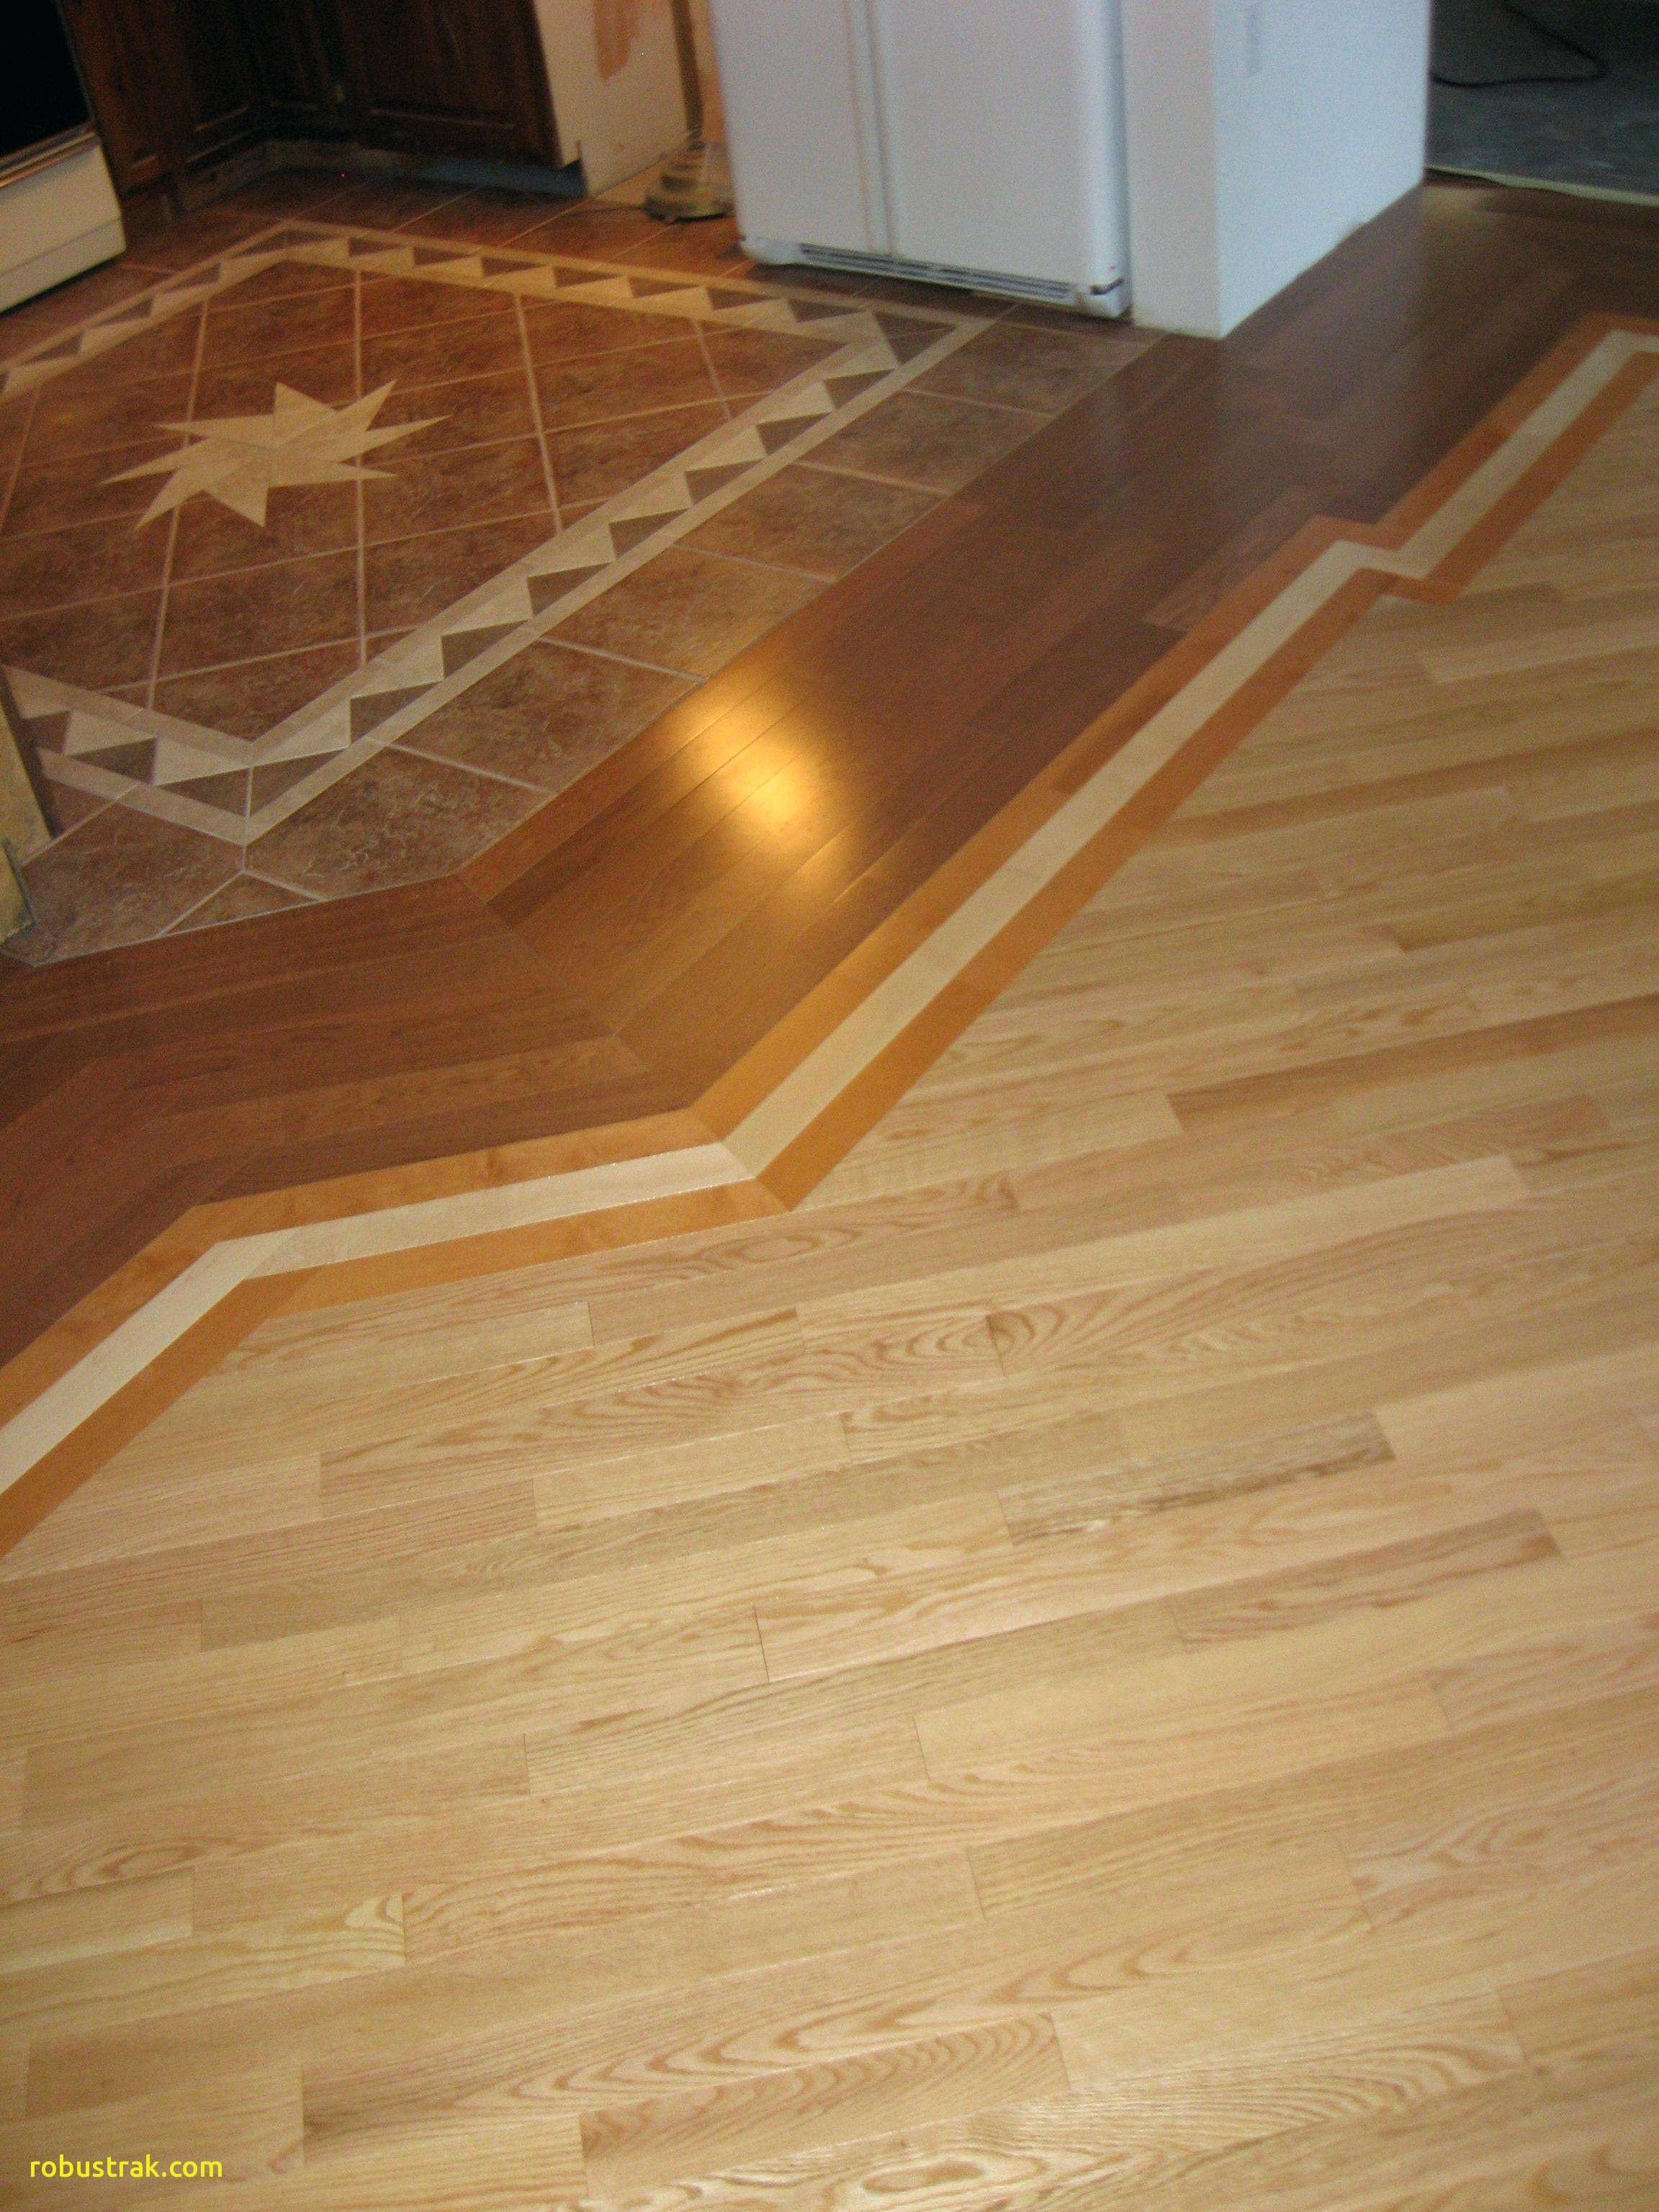 how to install hardwood floor transitions of inspirational wood to tile transition strips home design ideas inside full size of flooring wooden floor tiles priceod in india flooring tile transition to strips